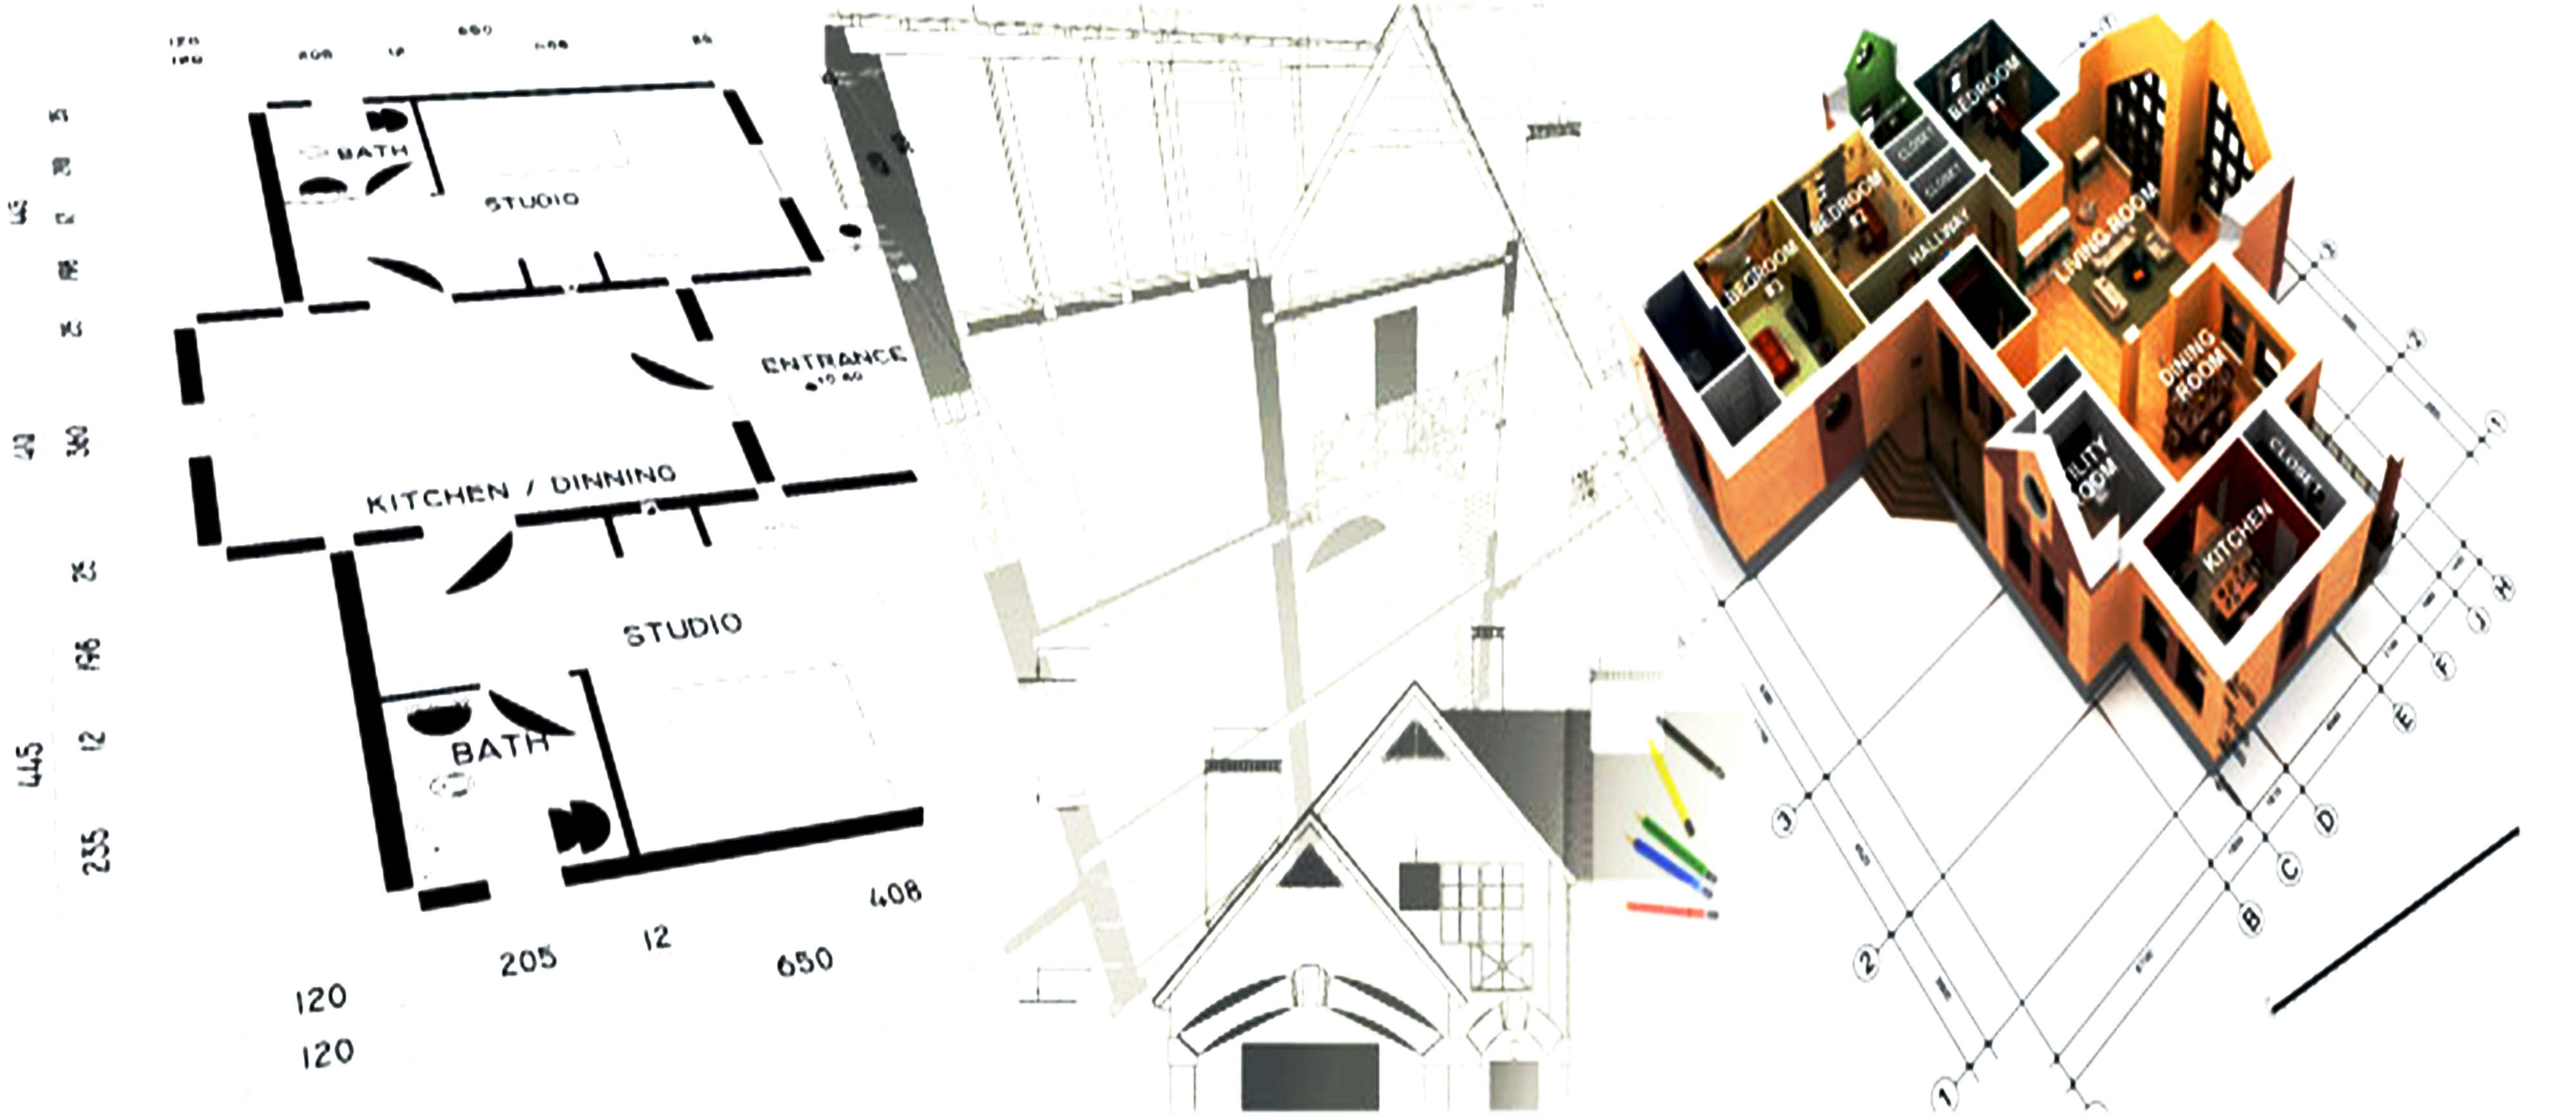 Bose Design Services With Its Team Of Dynamic And Talented Professionals Is  In A Unique Position To Offer Top Notch Quality Architectural Services In  Pune.